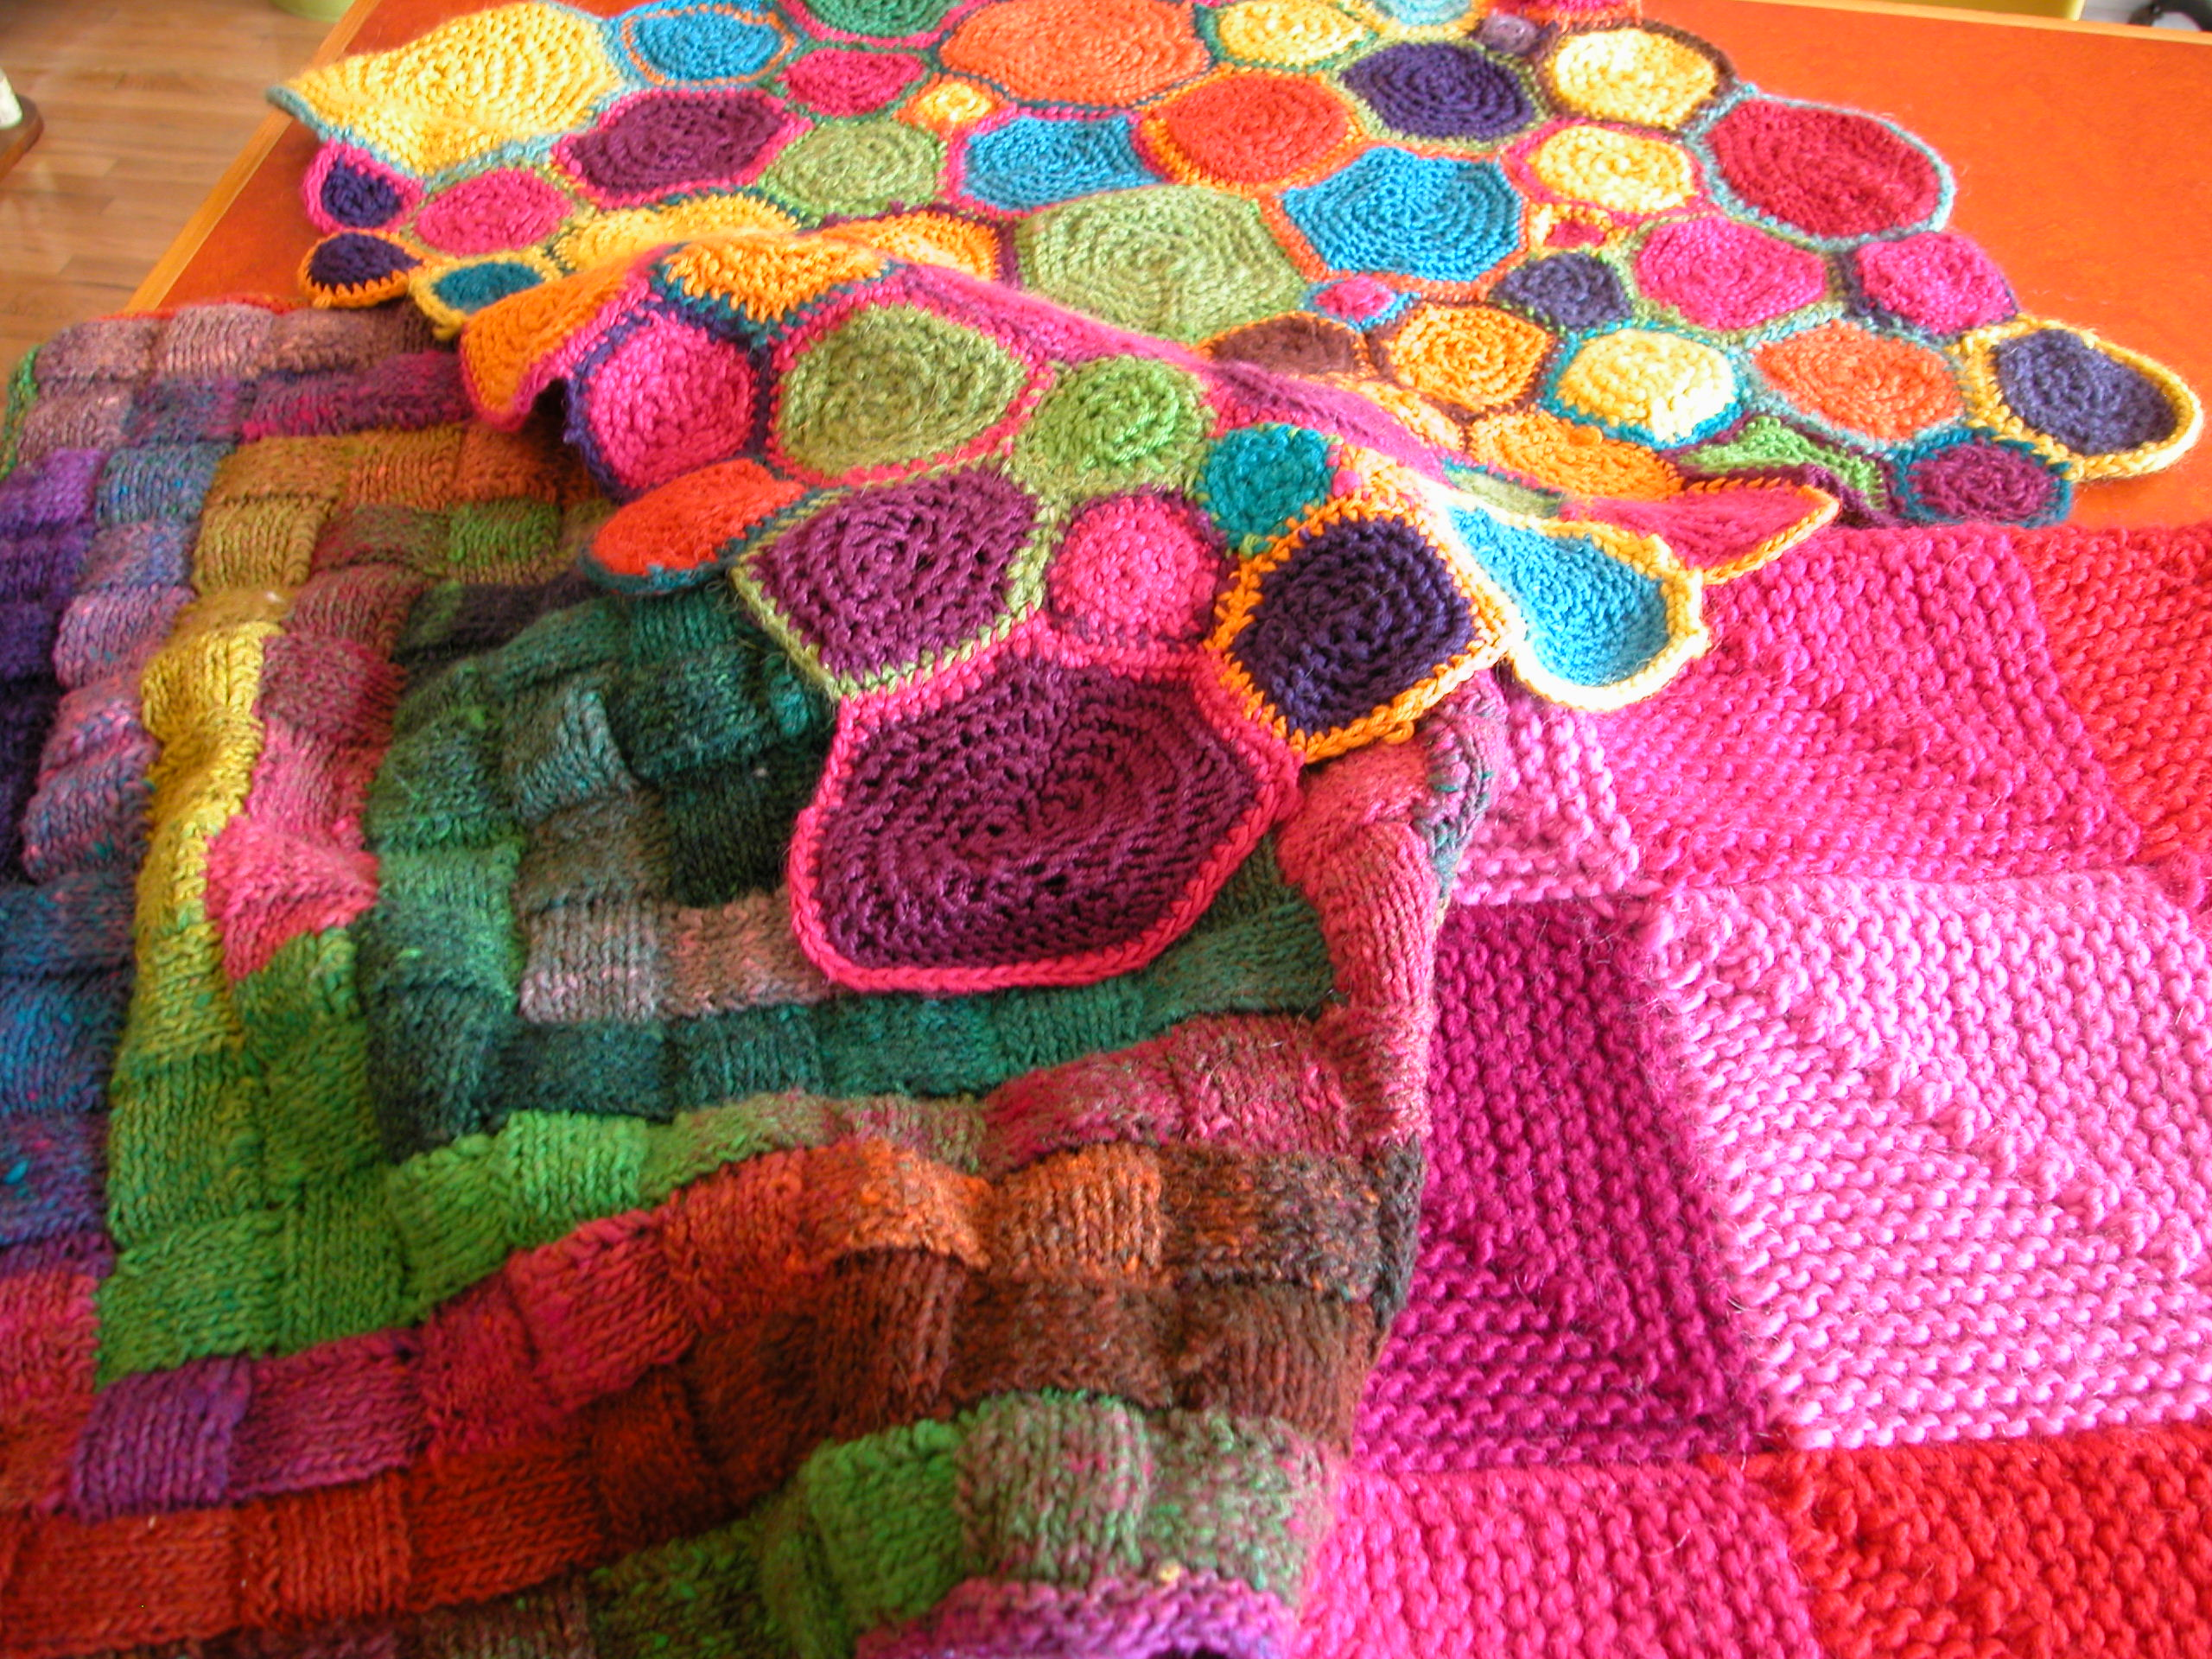 Knitting at the Museum | the knit cafe